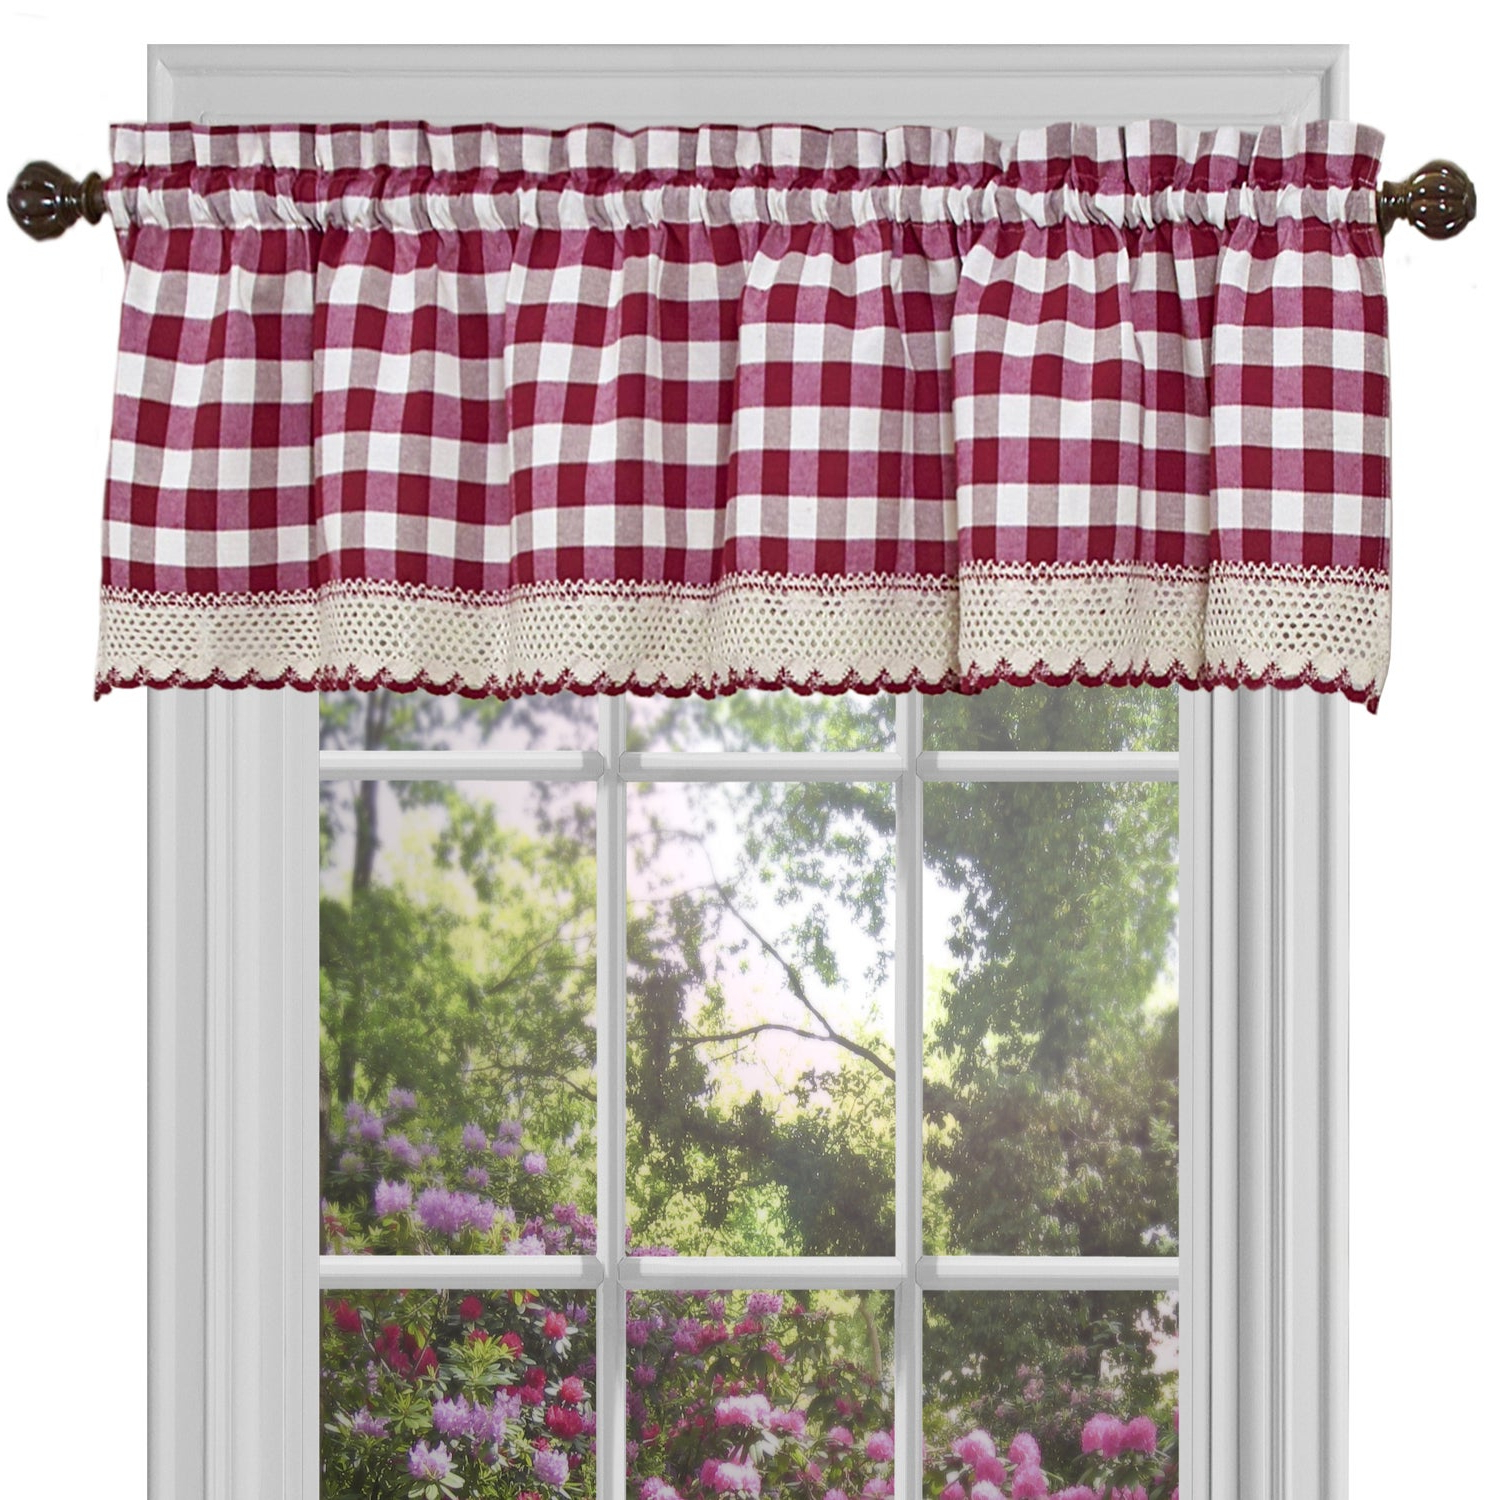 Burgundy Cotton Blend Classic Checkered Decorative Window Curtains With Regard To Widely Used Classic Buffalo Check Kitchen Burgundy/white Curtain Set Or Separates (View 18 of 20)